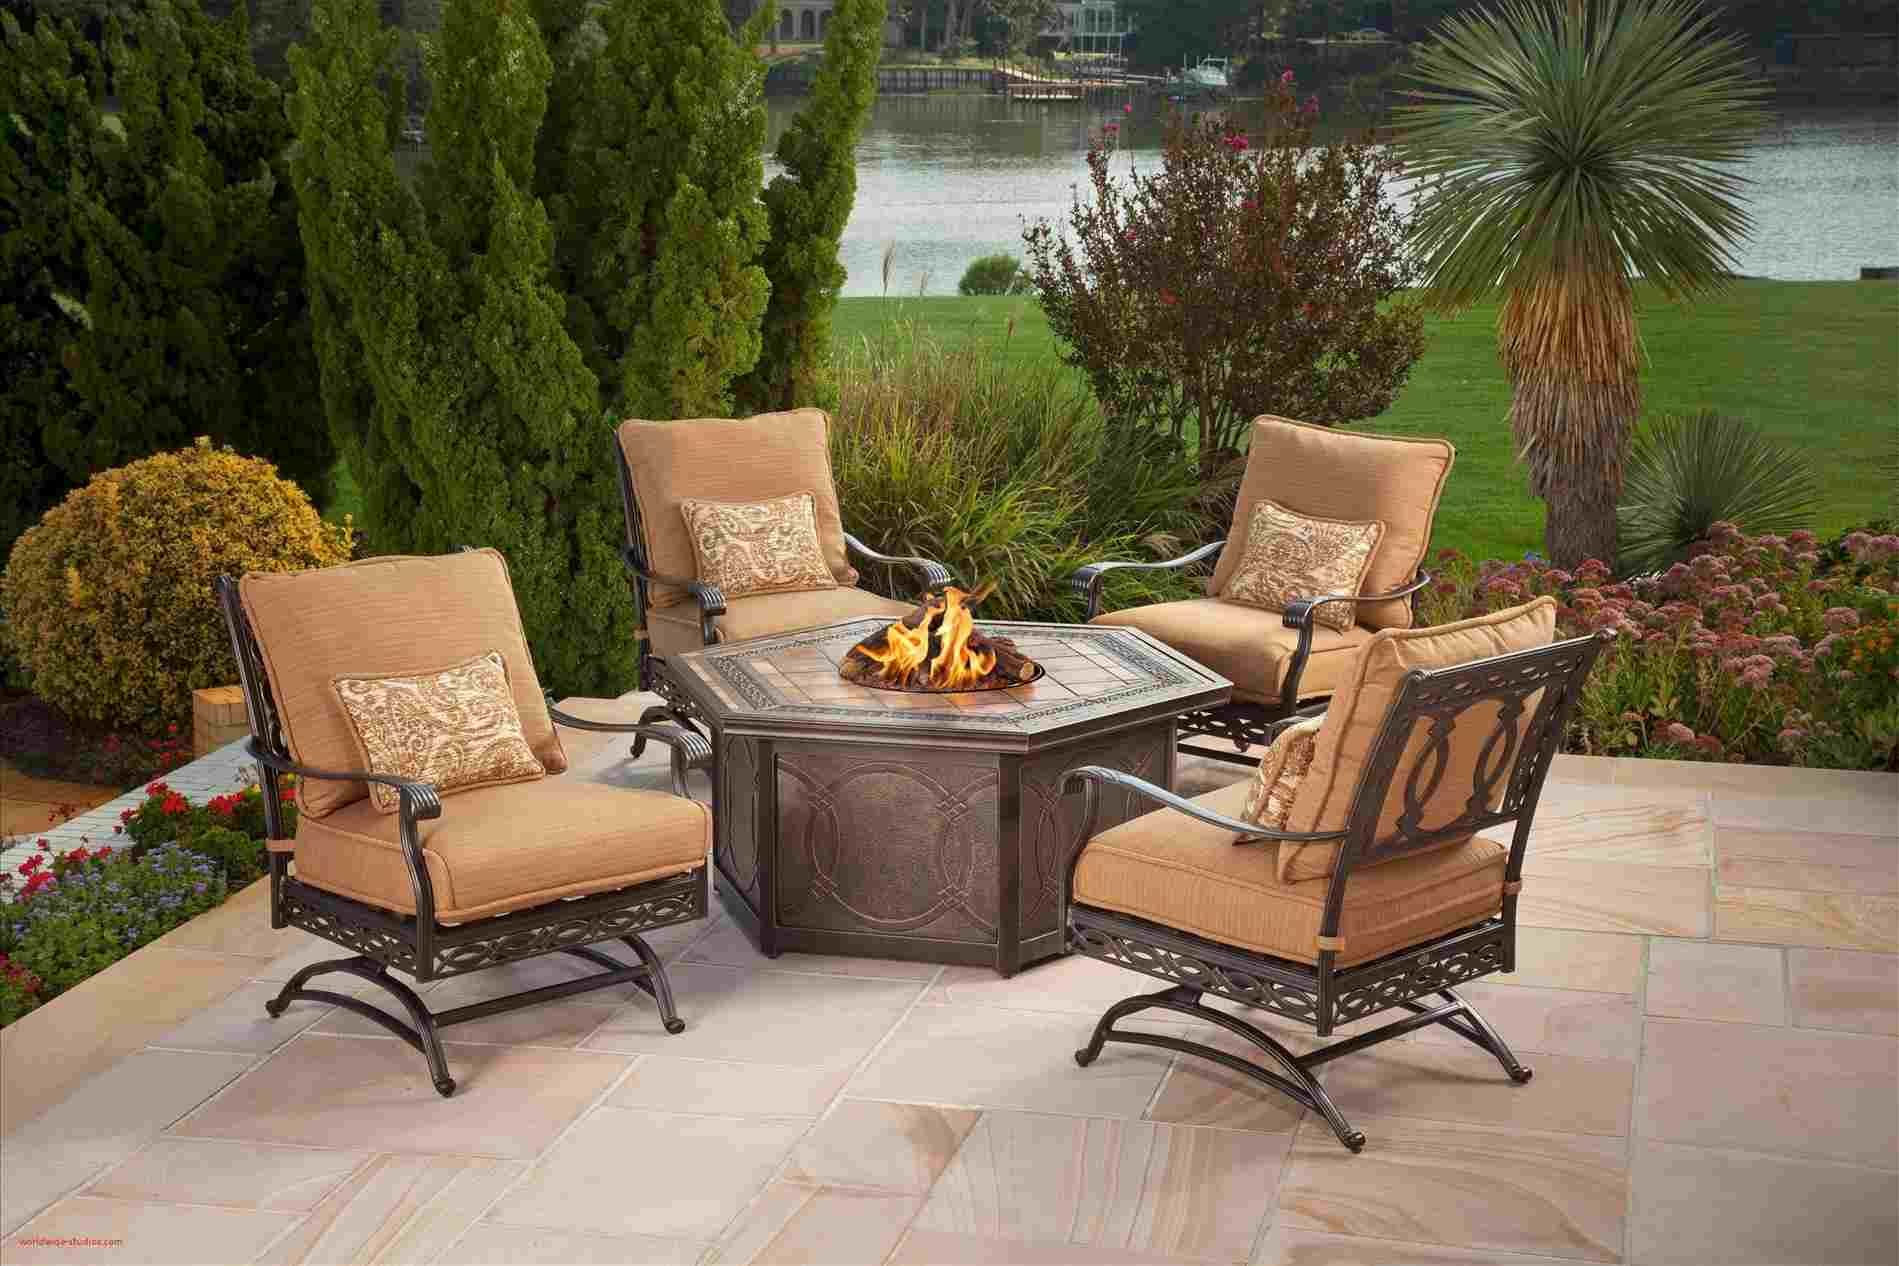 lowes fire pit on sale Small patio furniture, Cheap